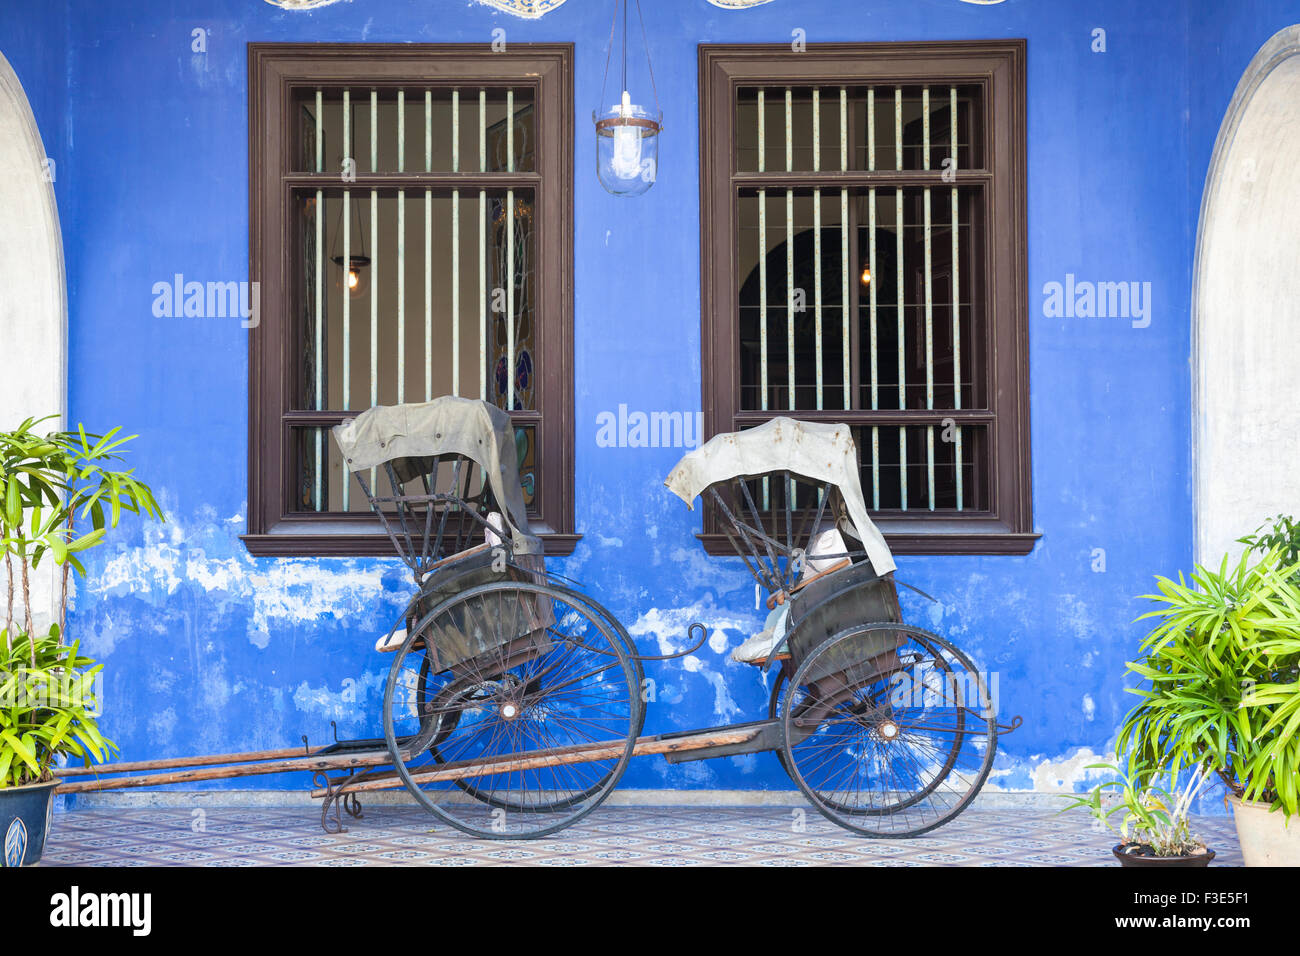 Georgetown, Malaysia — 04 August, 2014: Old rickshaw tricycle near Fatt Tze Mansion or Blue Mansion - Stock Image